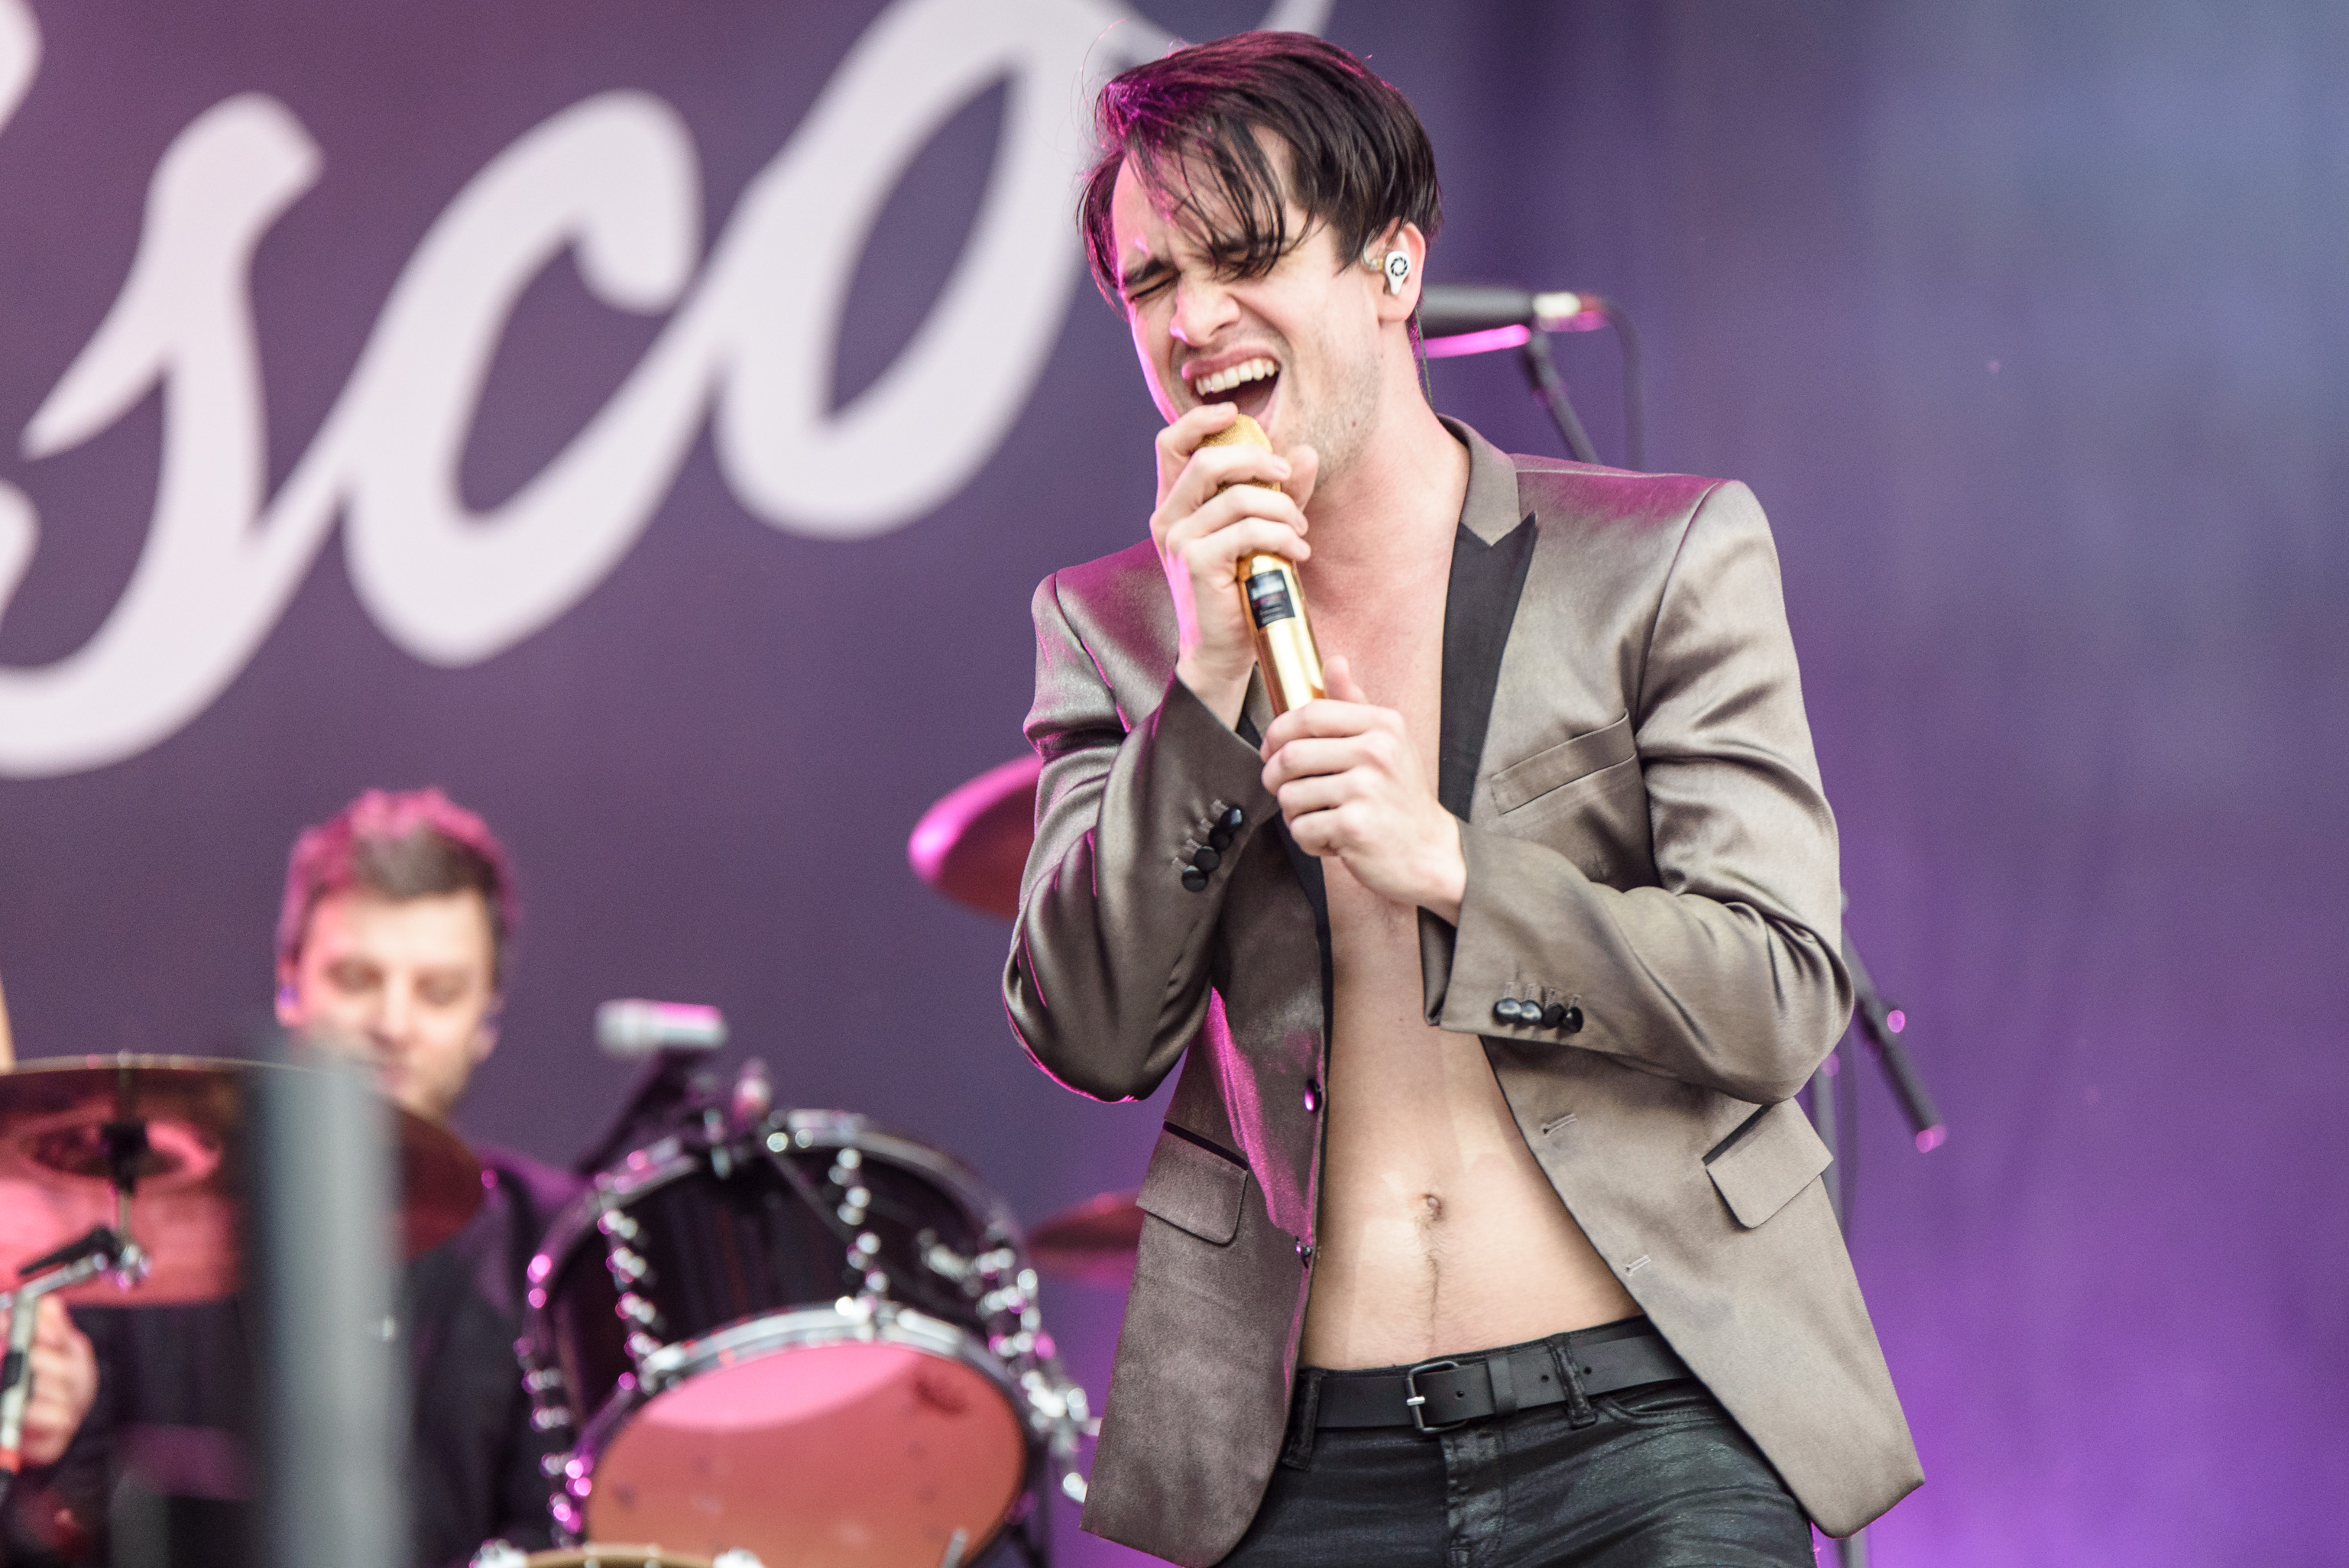 The 31-year old son of father (?) and mother(?) Brendon Urie in 2018 photo. Brendon Urie earned a  million dollar salary - leaving the net worth at 4 million in 2018